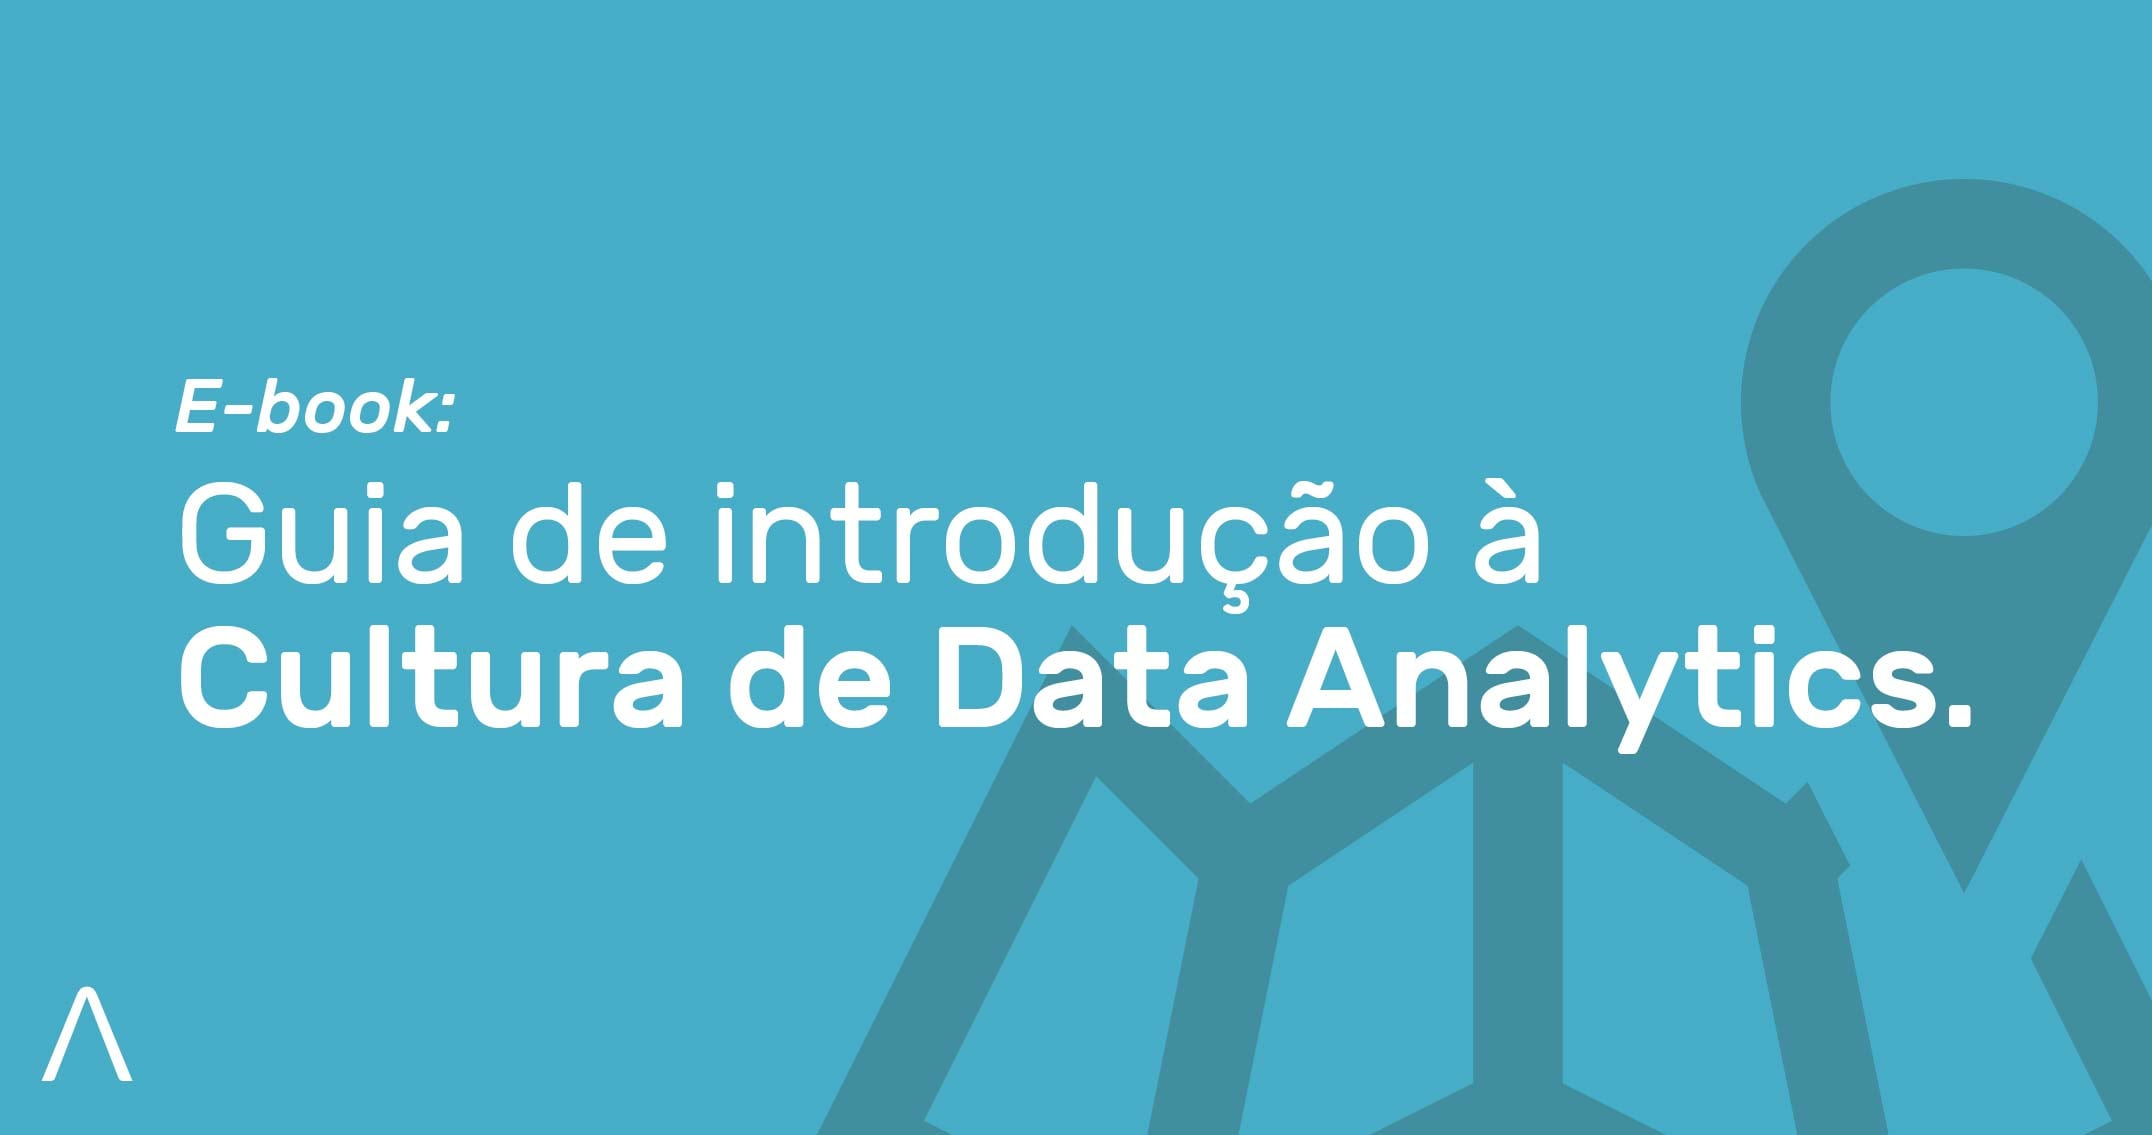 [E-book] Aprenda os fundamentos da cultura de data analytics e posicione-se a frente no mercado.